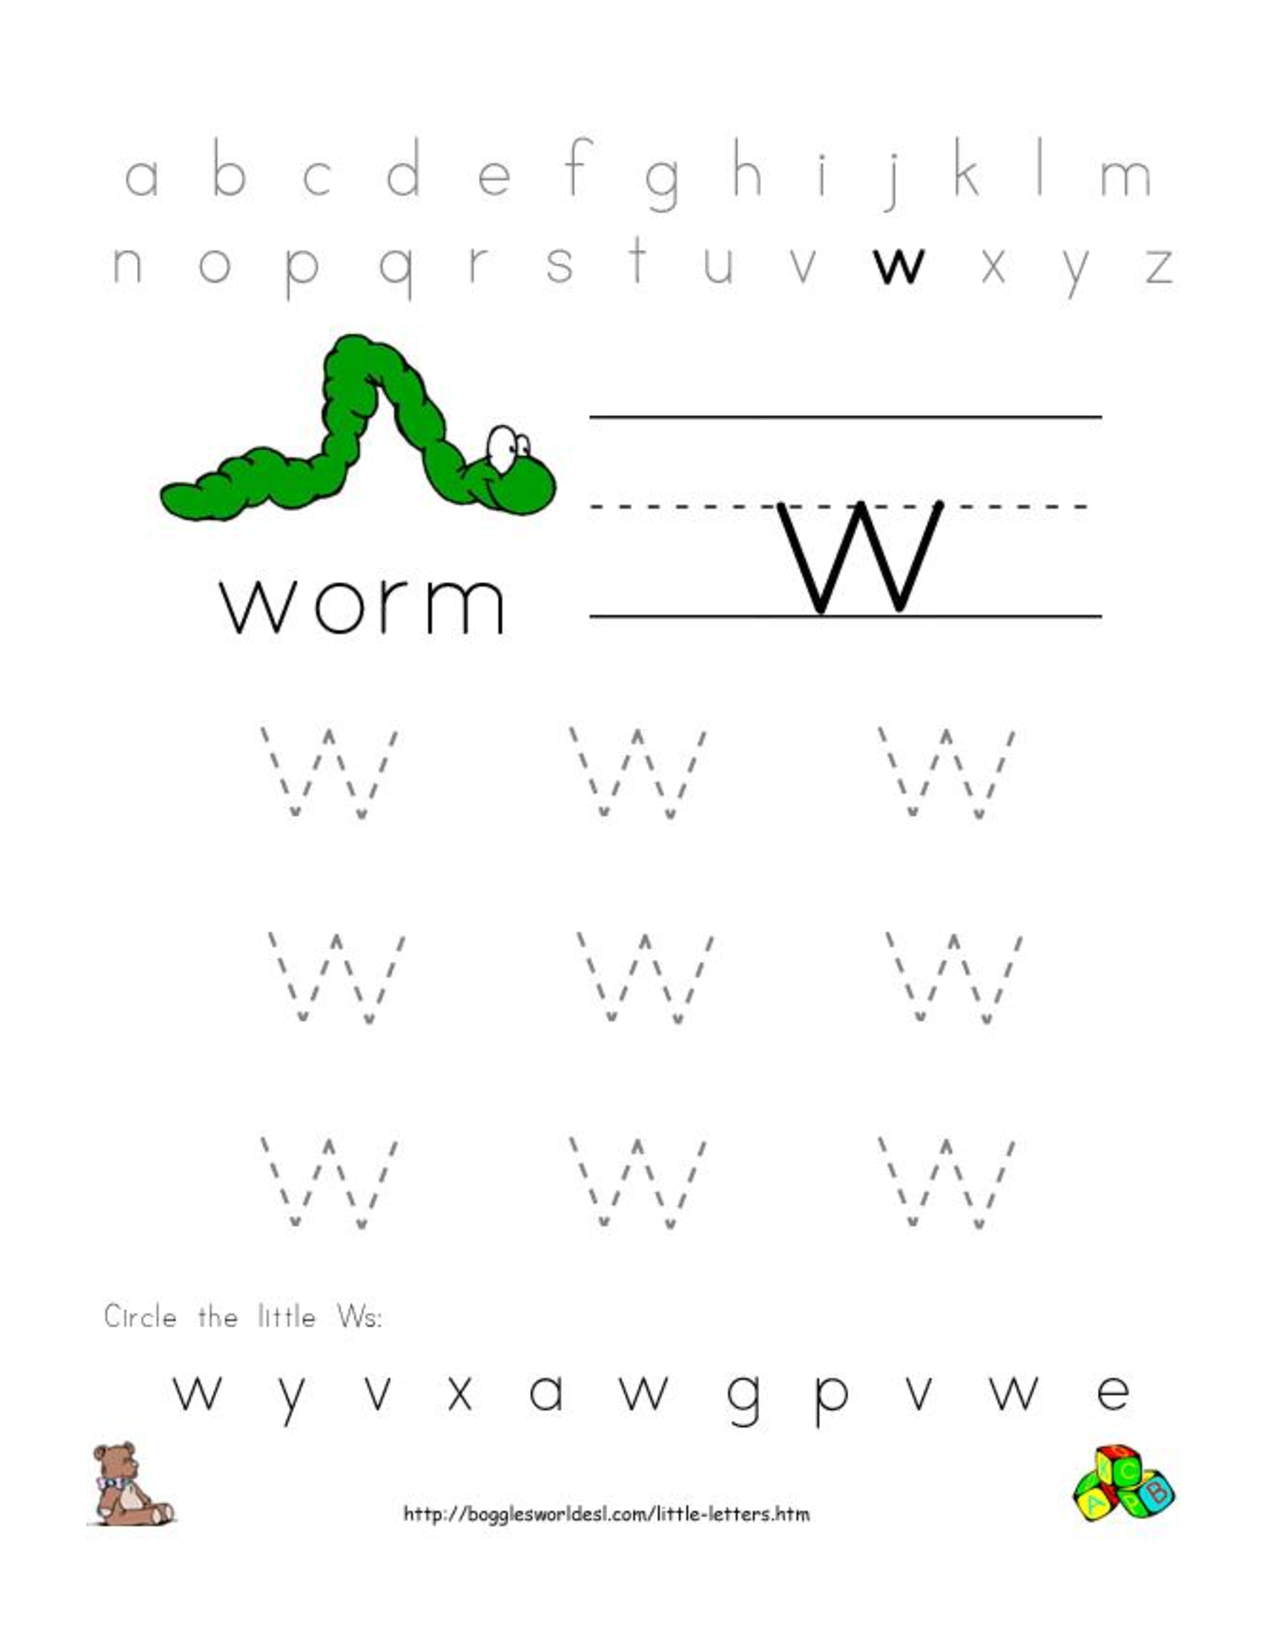 Alphabet Worksheets For Preschoolers Alphabet Worksheet Little Letter W